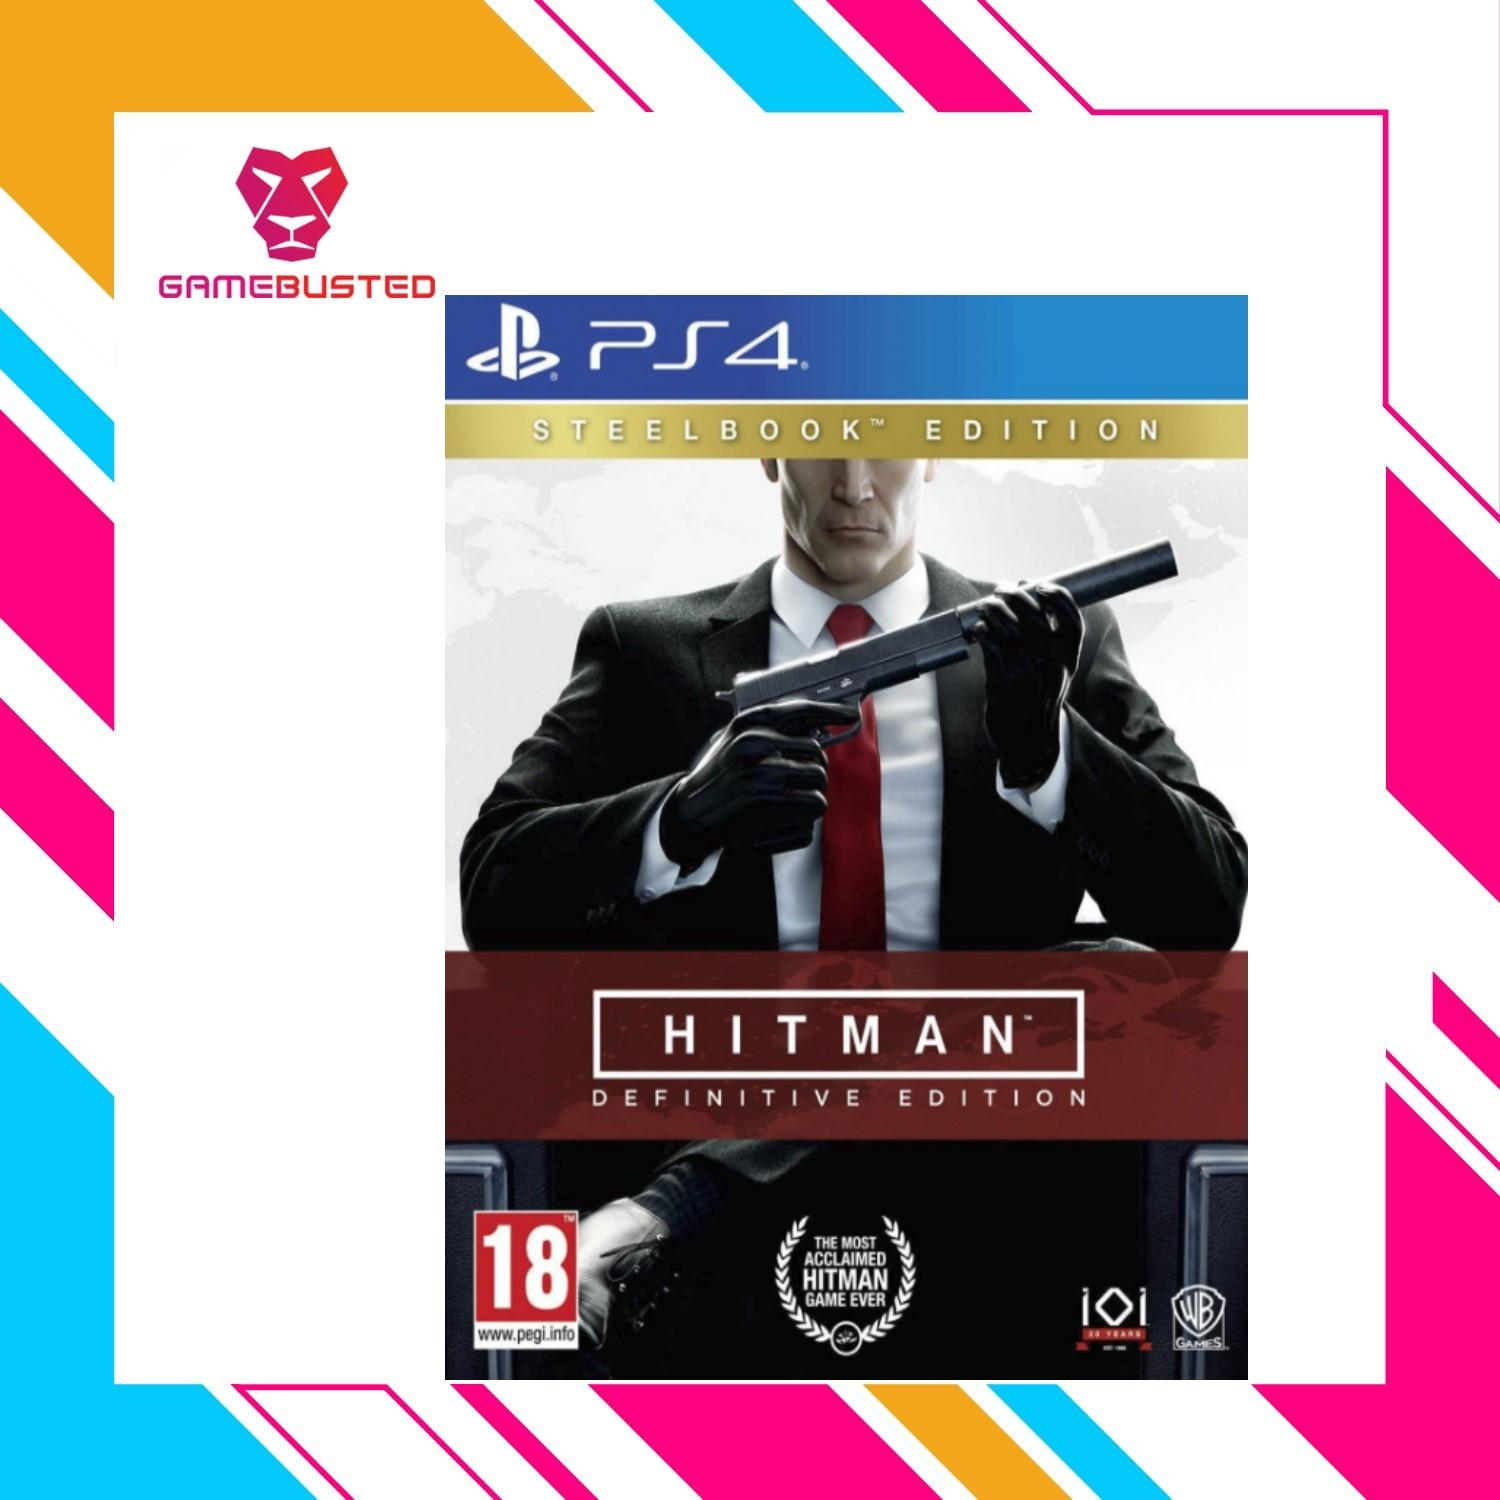 Check For Price Of Ps4 Nba 2k18 Legend Edition As R3 Update Sony Playstation Injustice 2 Hitman Definitive Steel Book